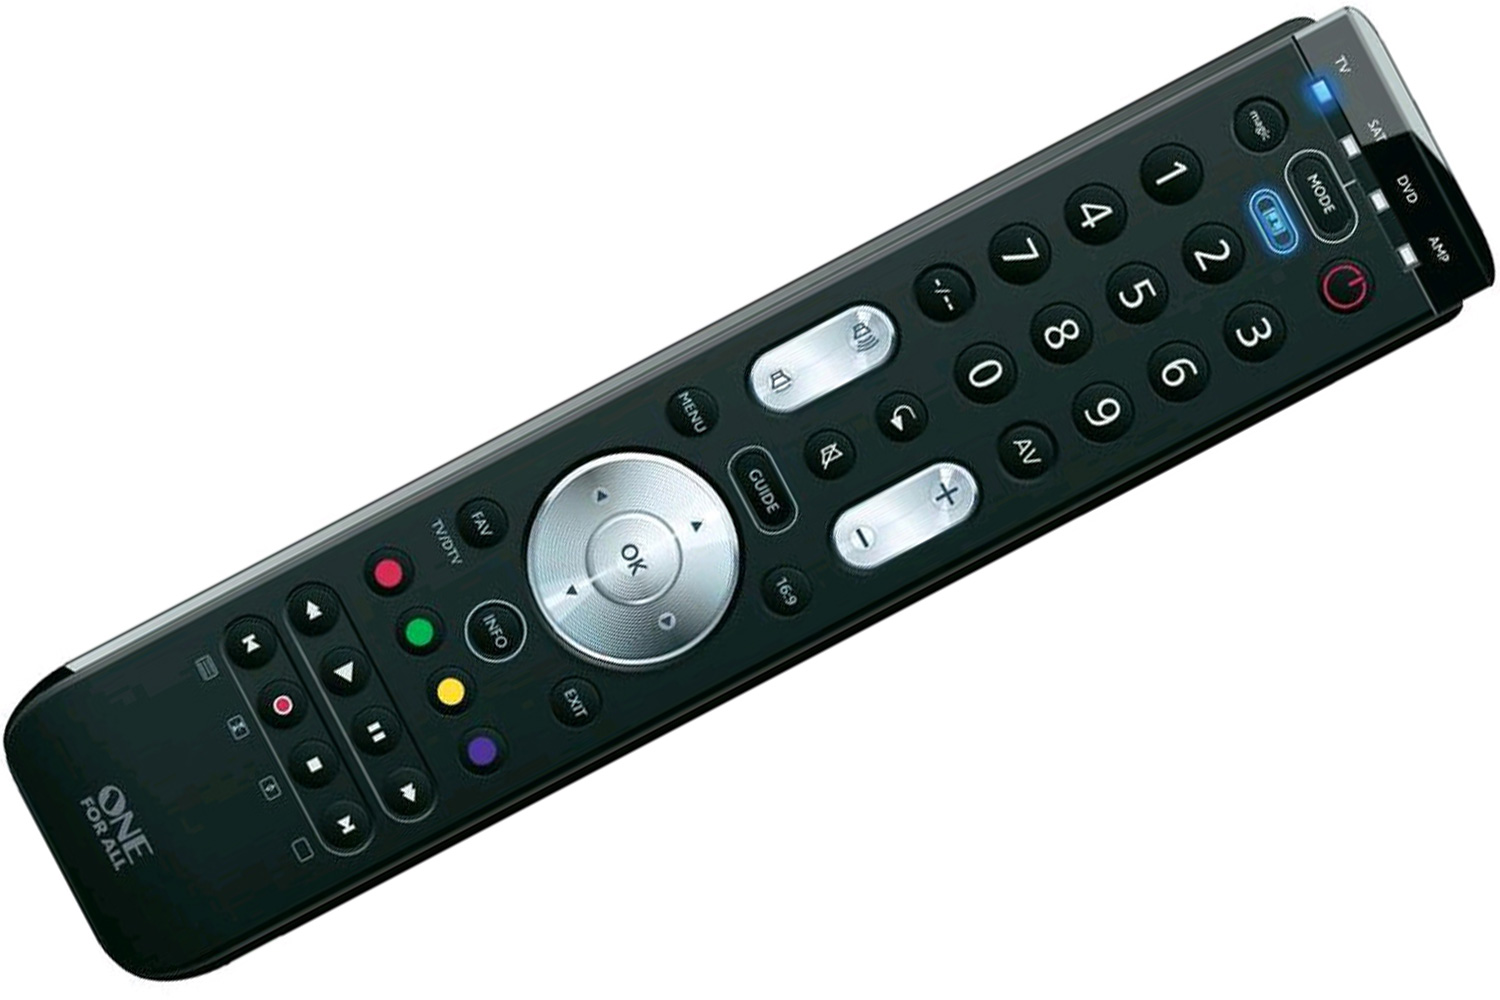 One For All Universal Remote 4 Device Ireland : URC7140a from www.harveynorman.ie size 1500 x 1000 jpeg 184kB